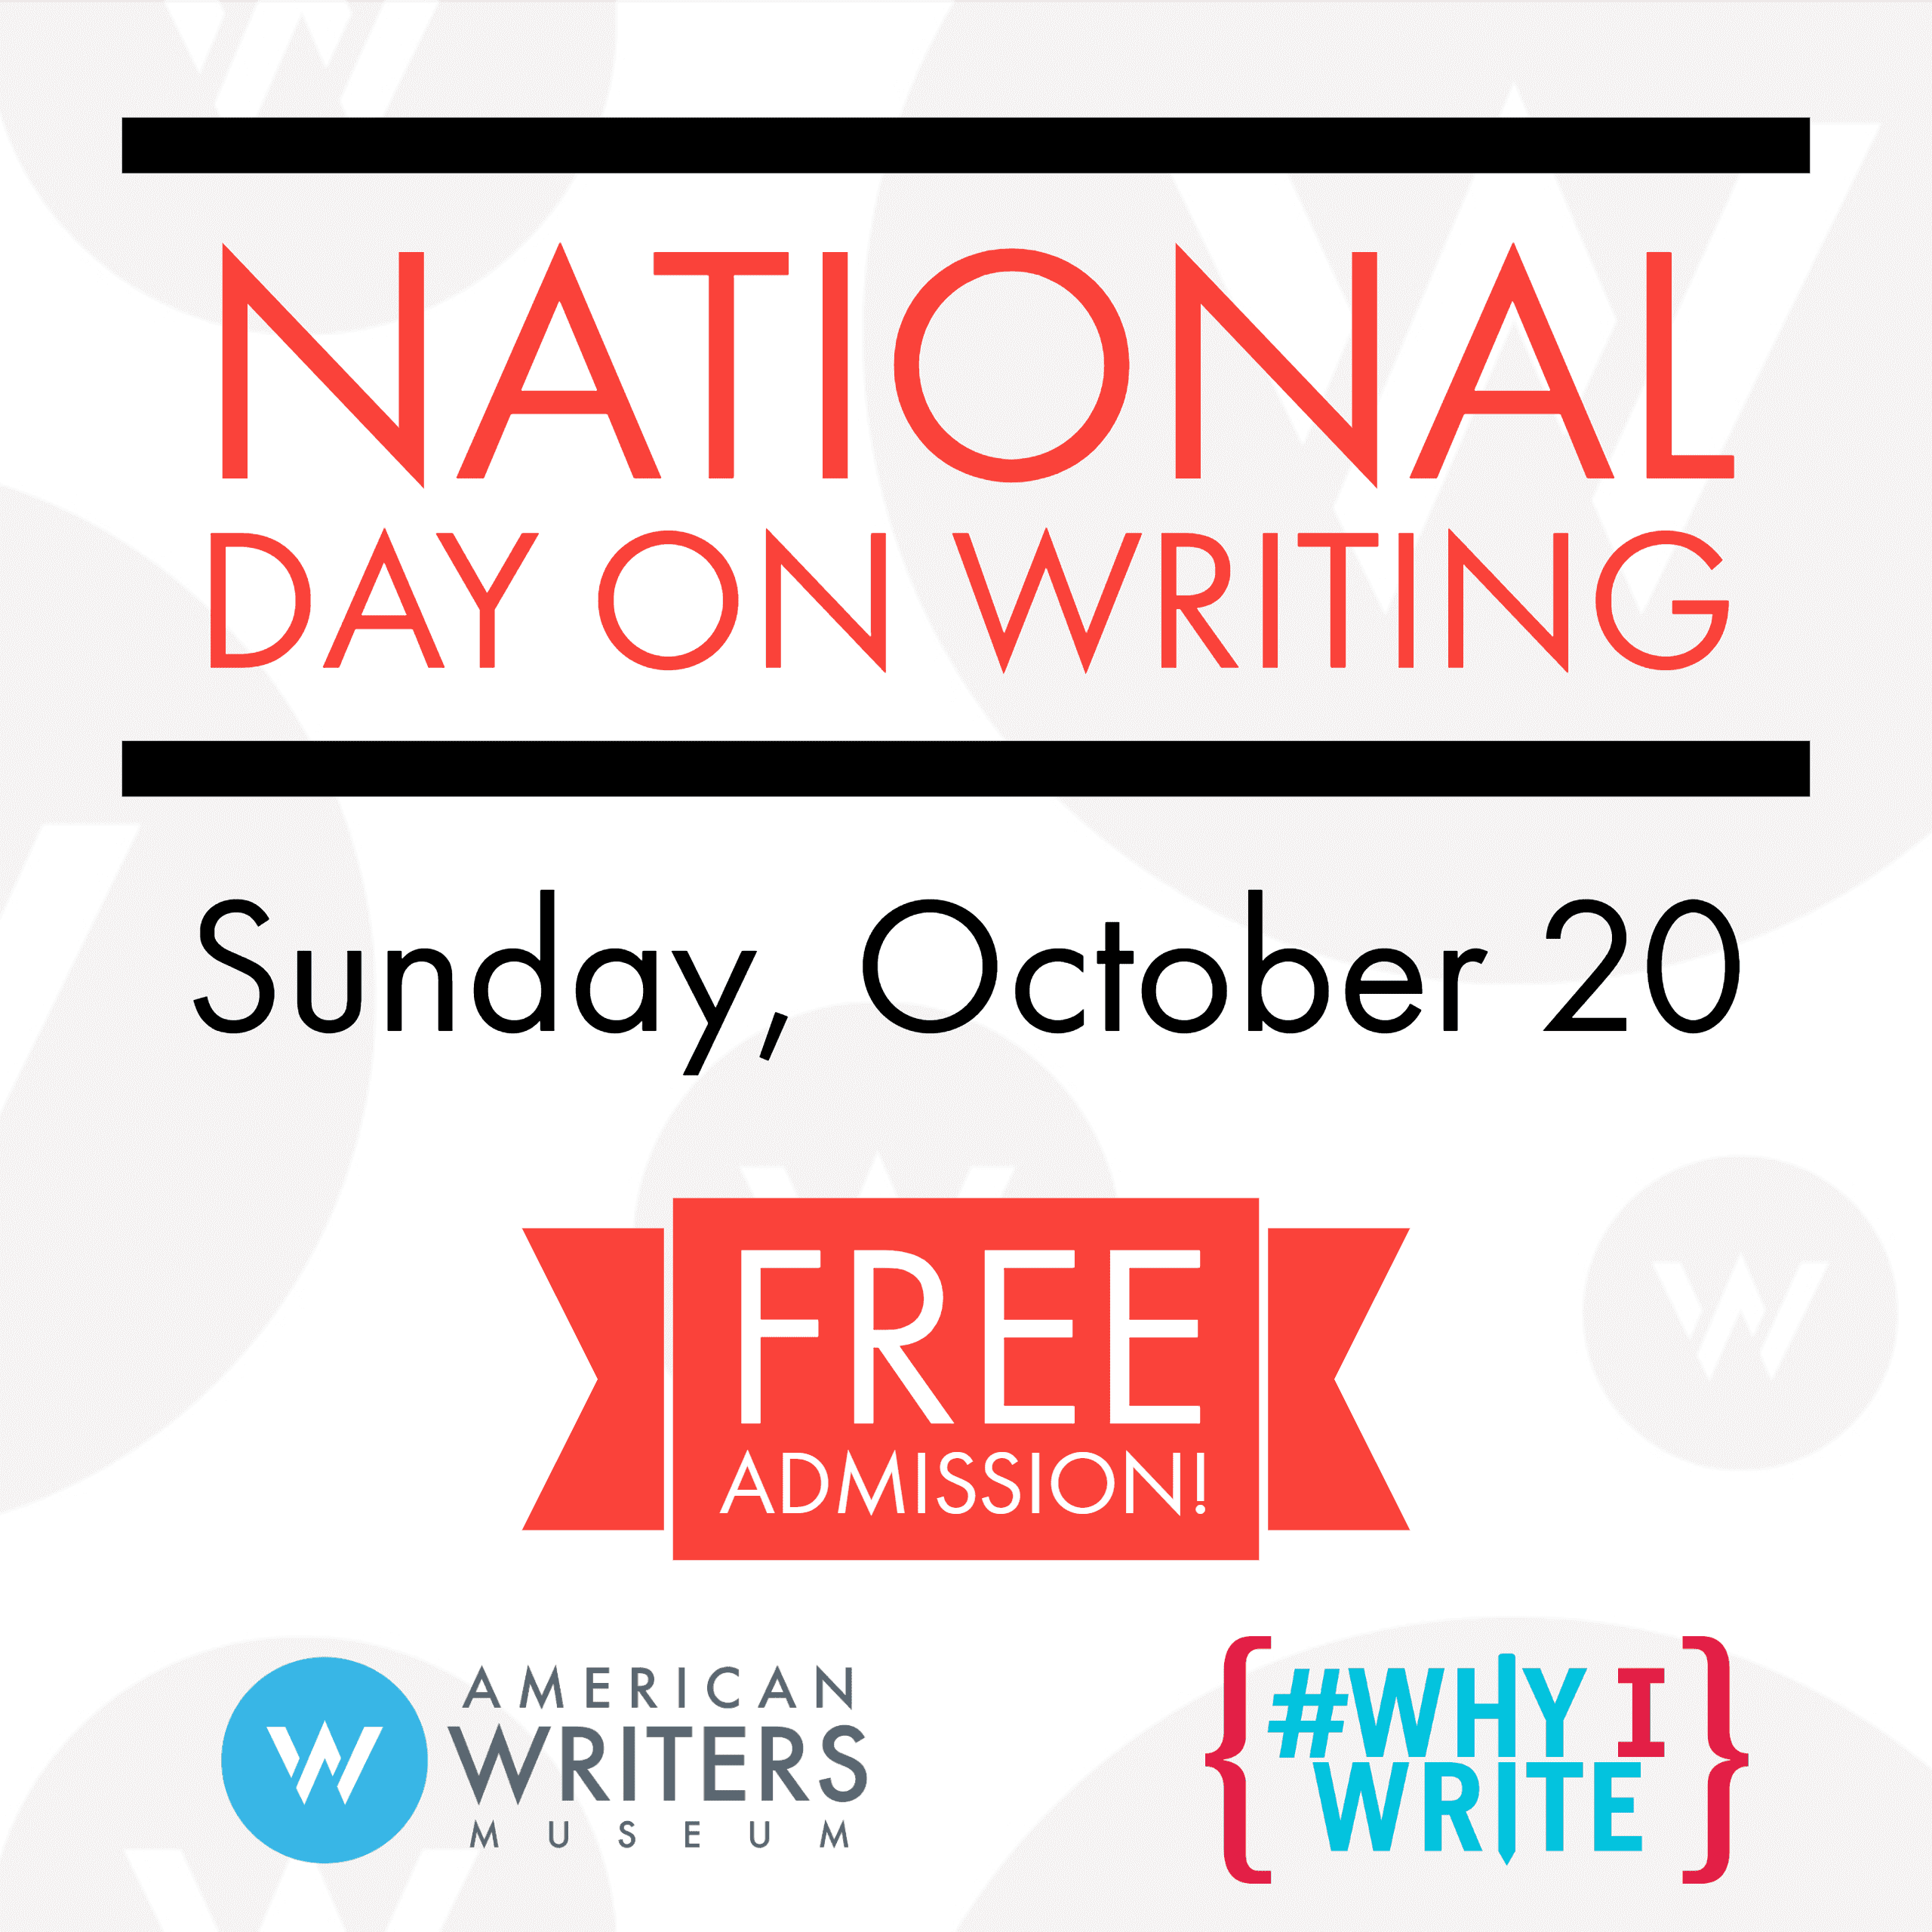 On October 20, celebrate National Day On Writing with free admission to the American Writers Museum